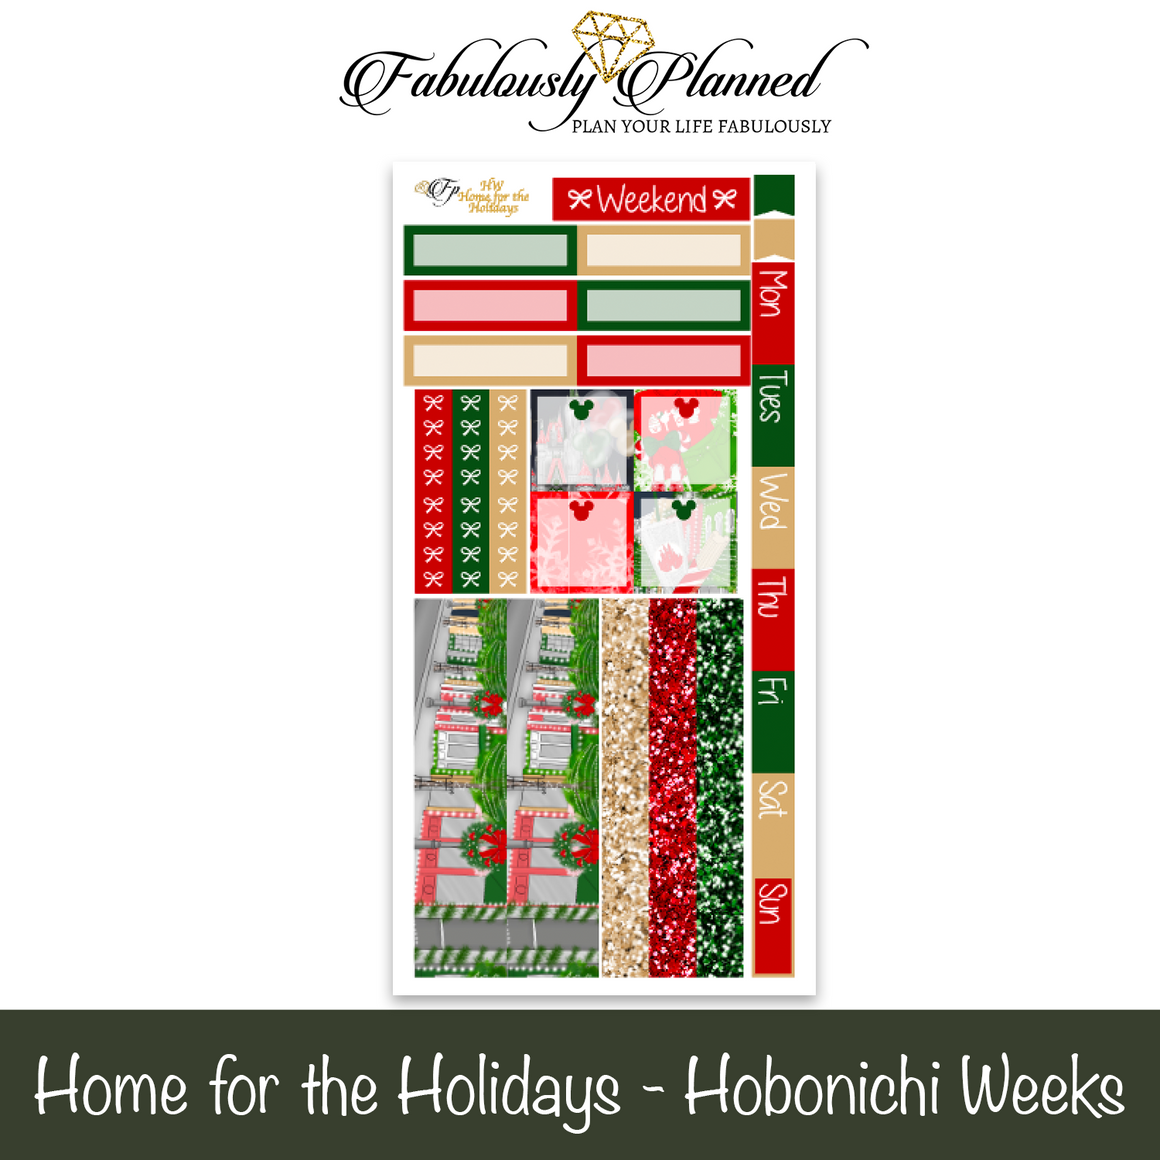 Home for the Holidays Hobonichi Weeks Kit